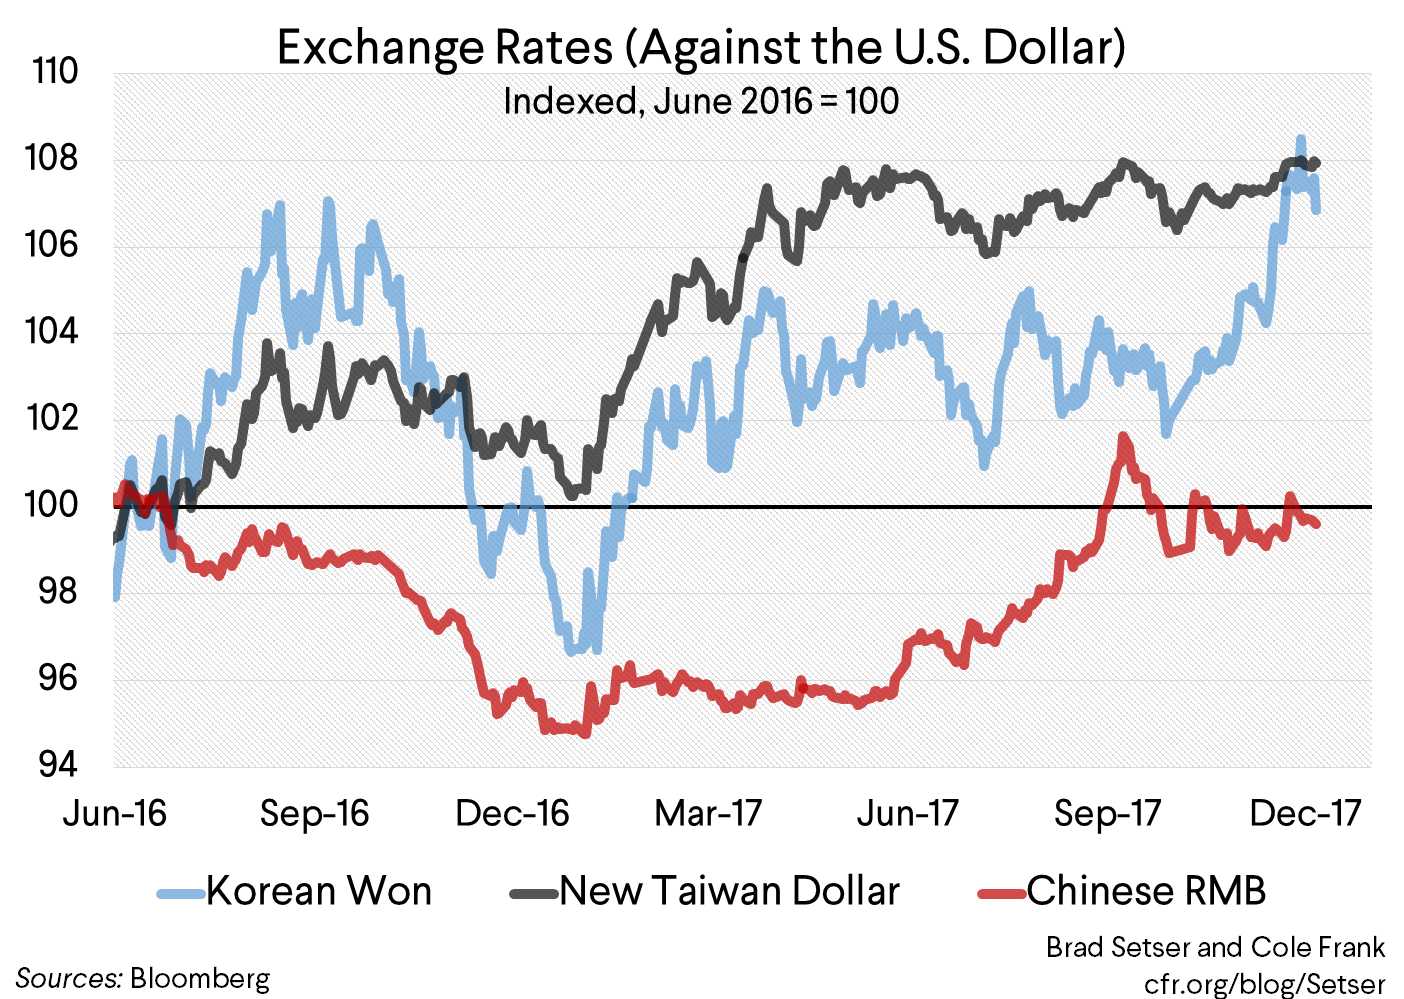 Korean Won Up, New Taiwan Dollar Flat: An Update on Asian Intervention